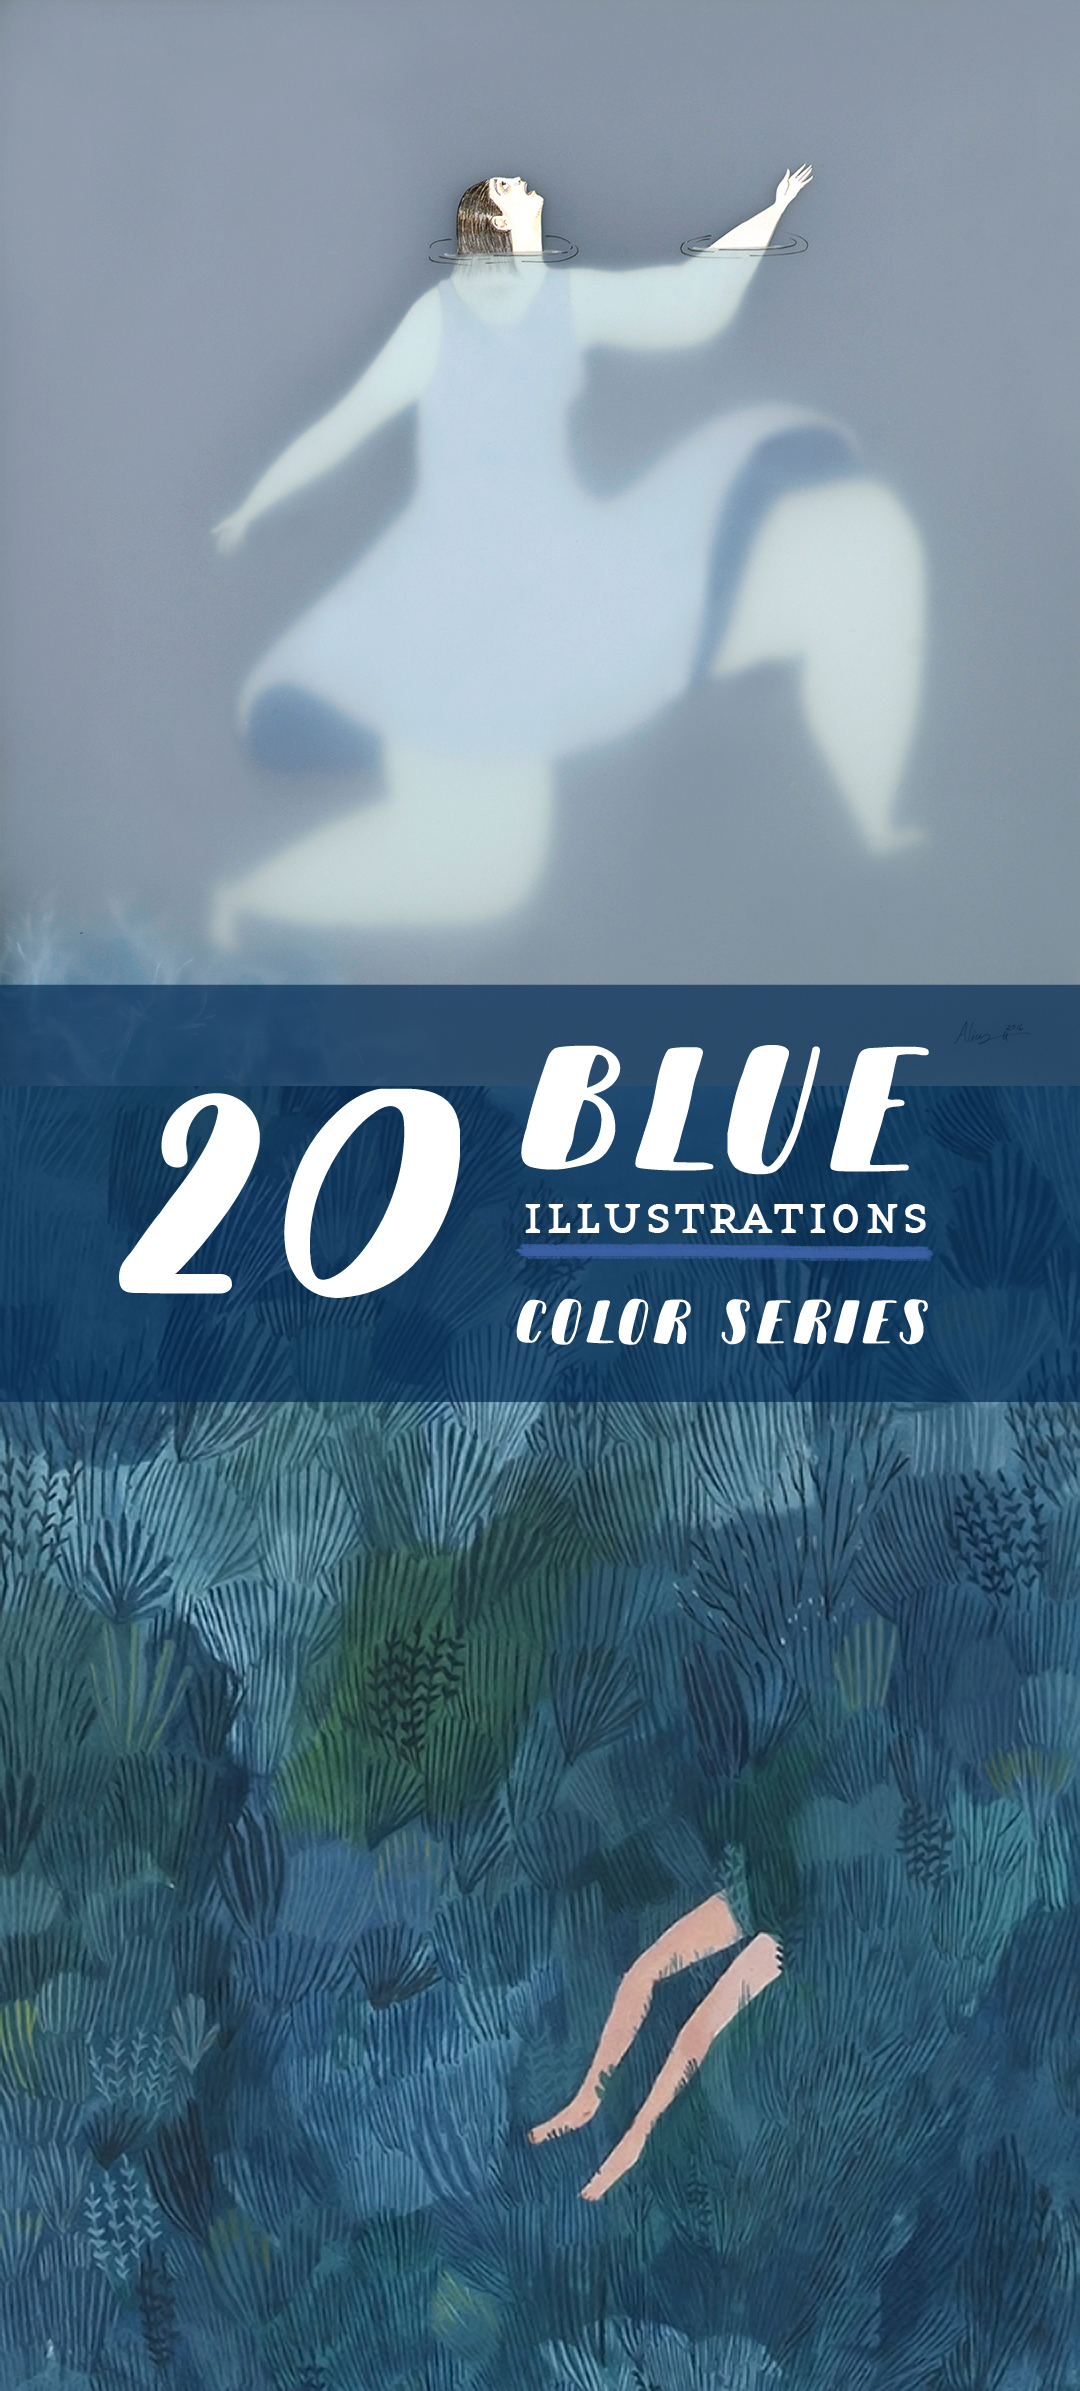 Blue illustrations